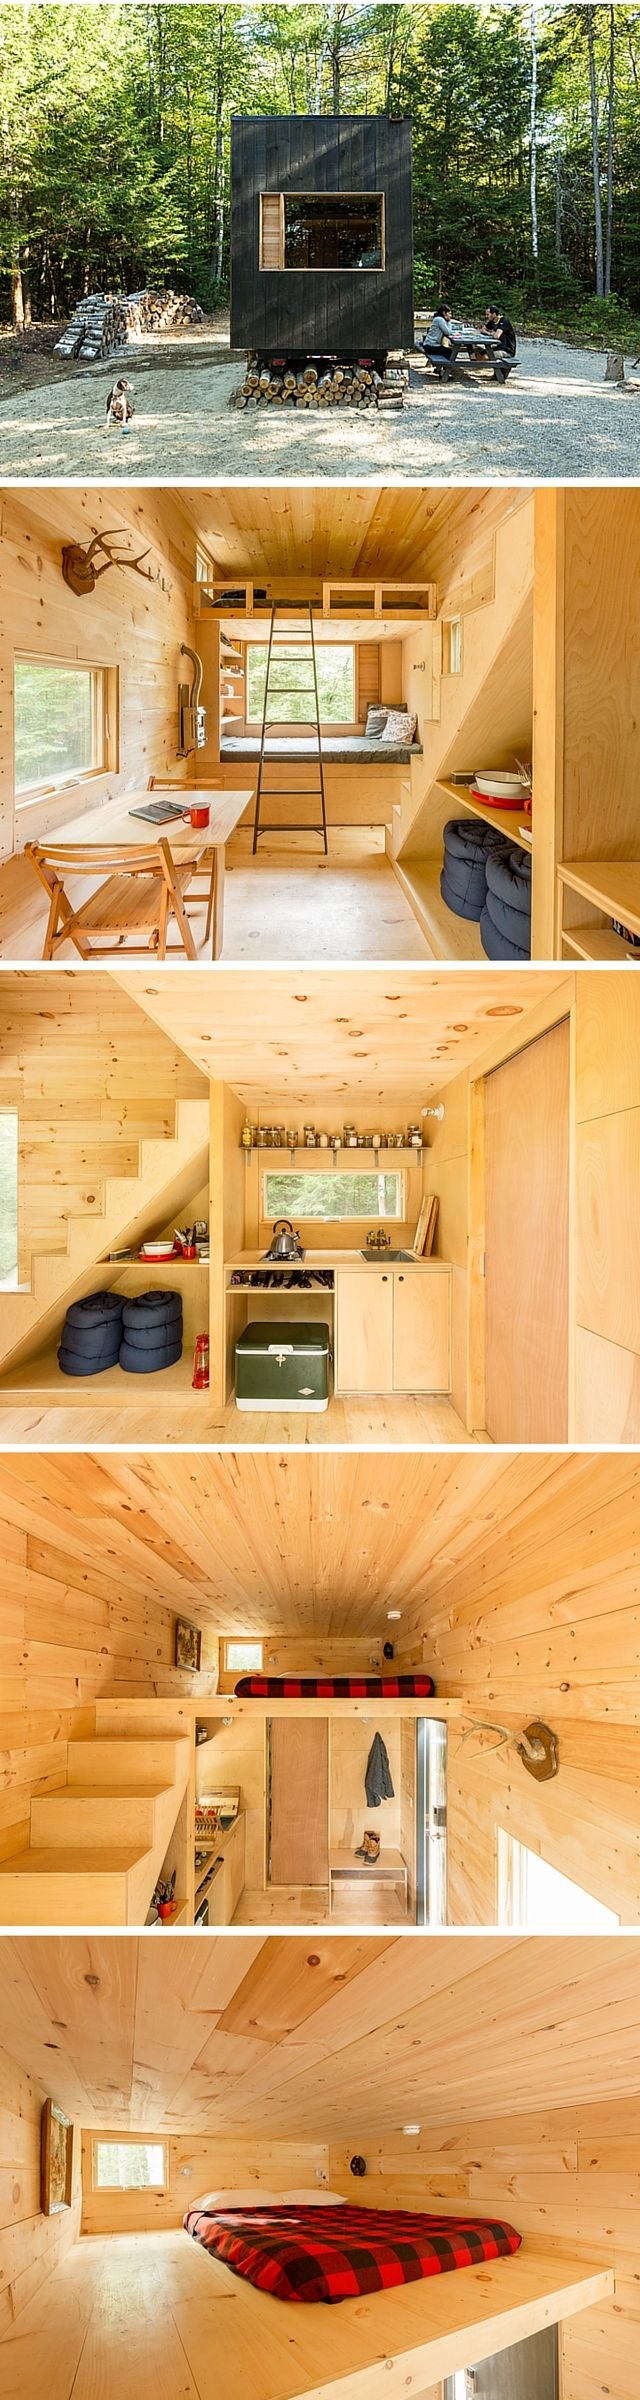 Would love to have a tiny home to travel.....